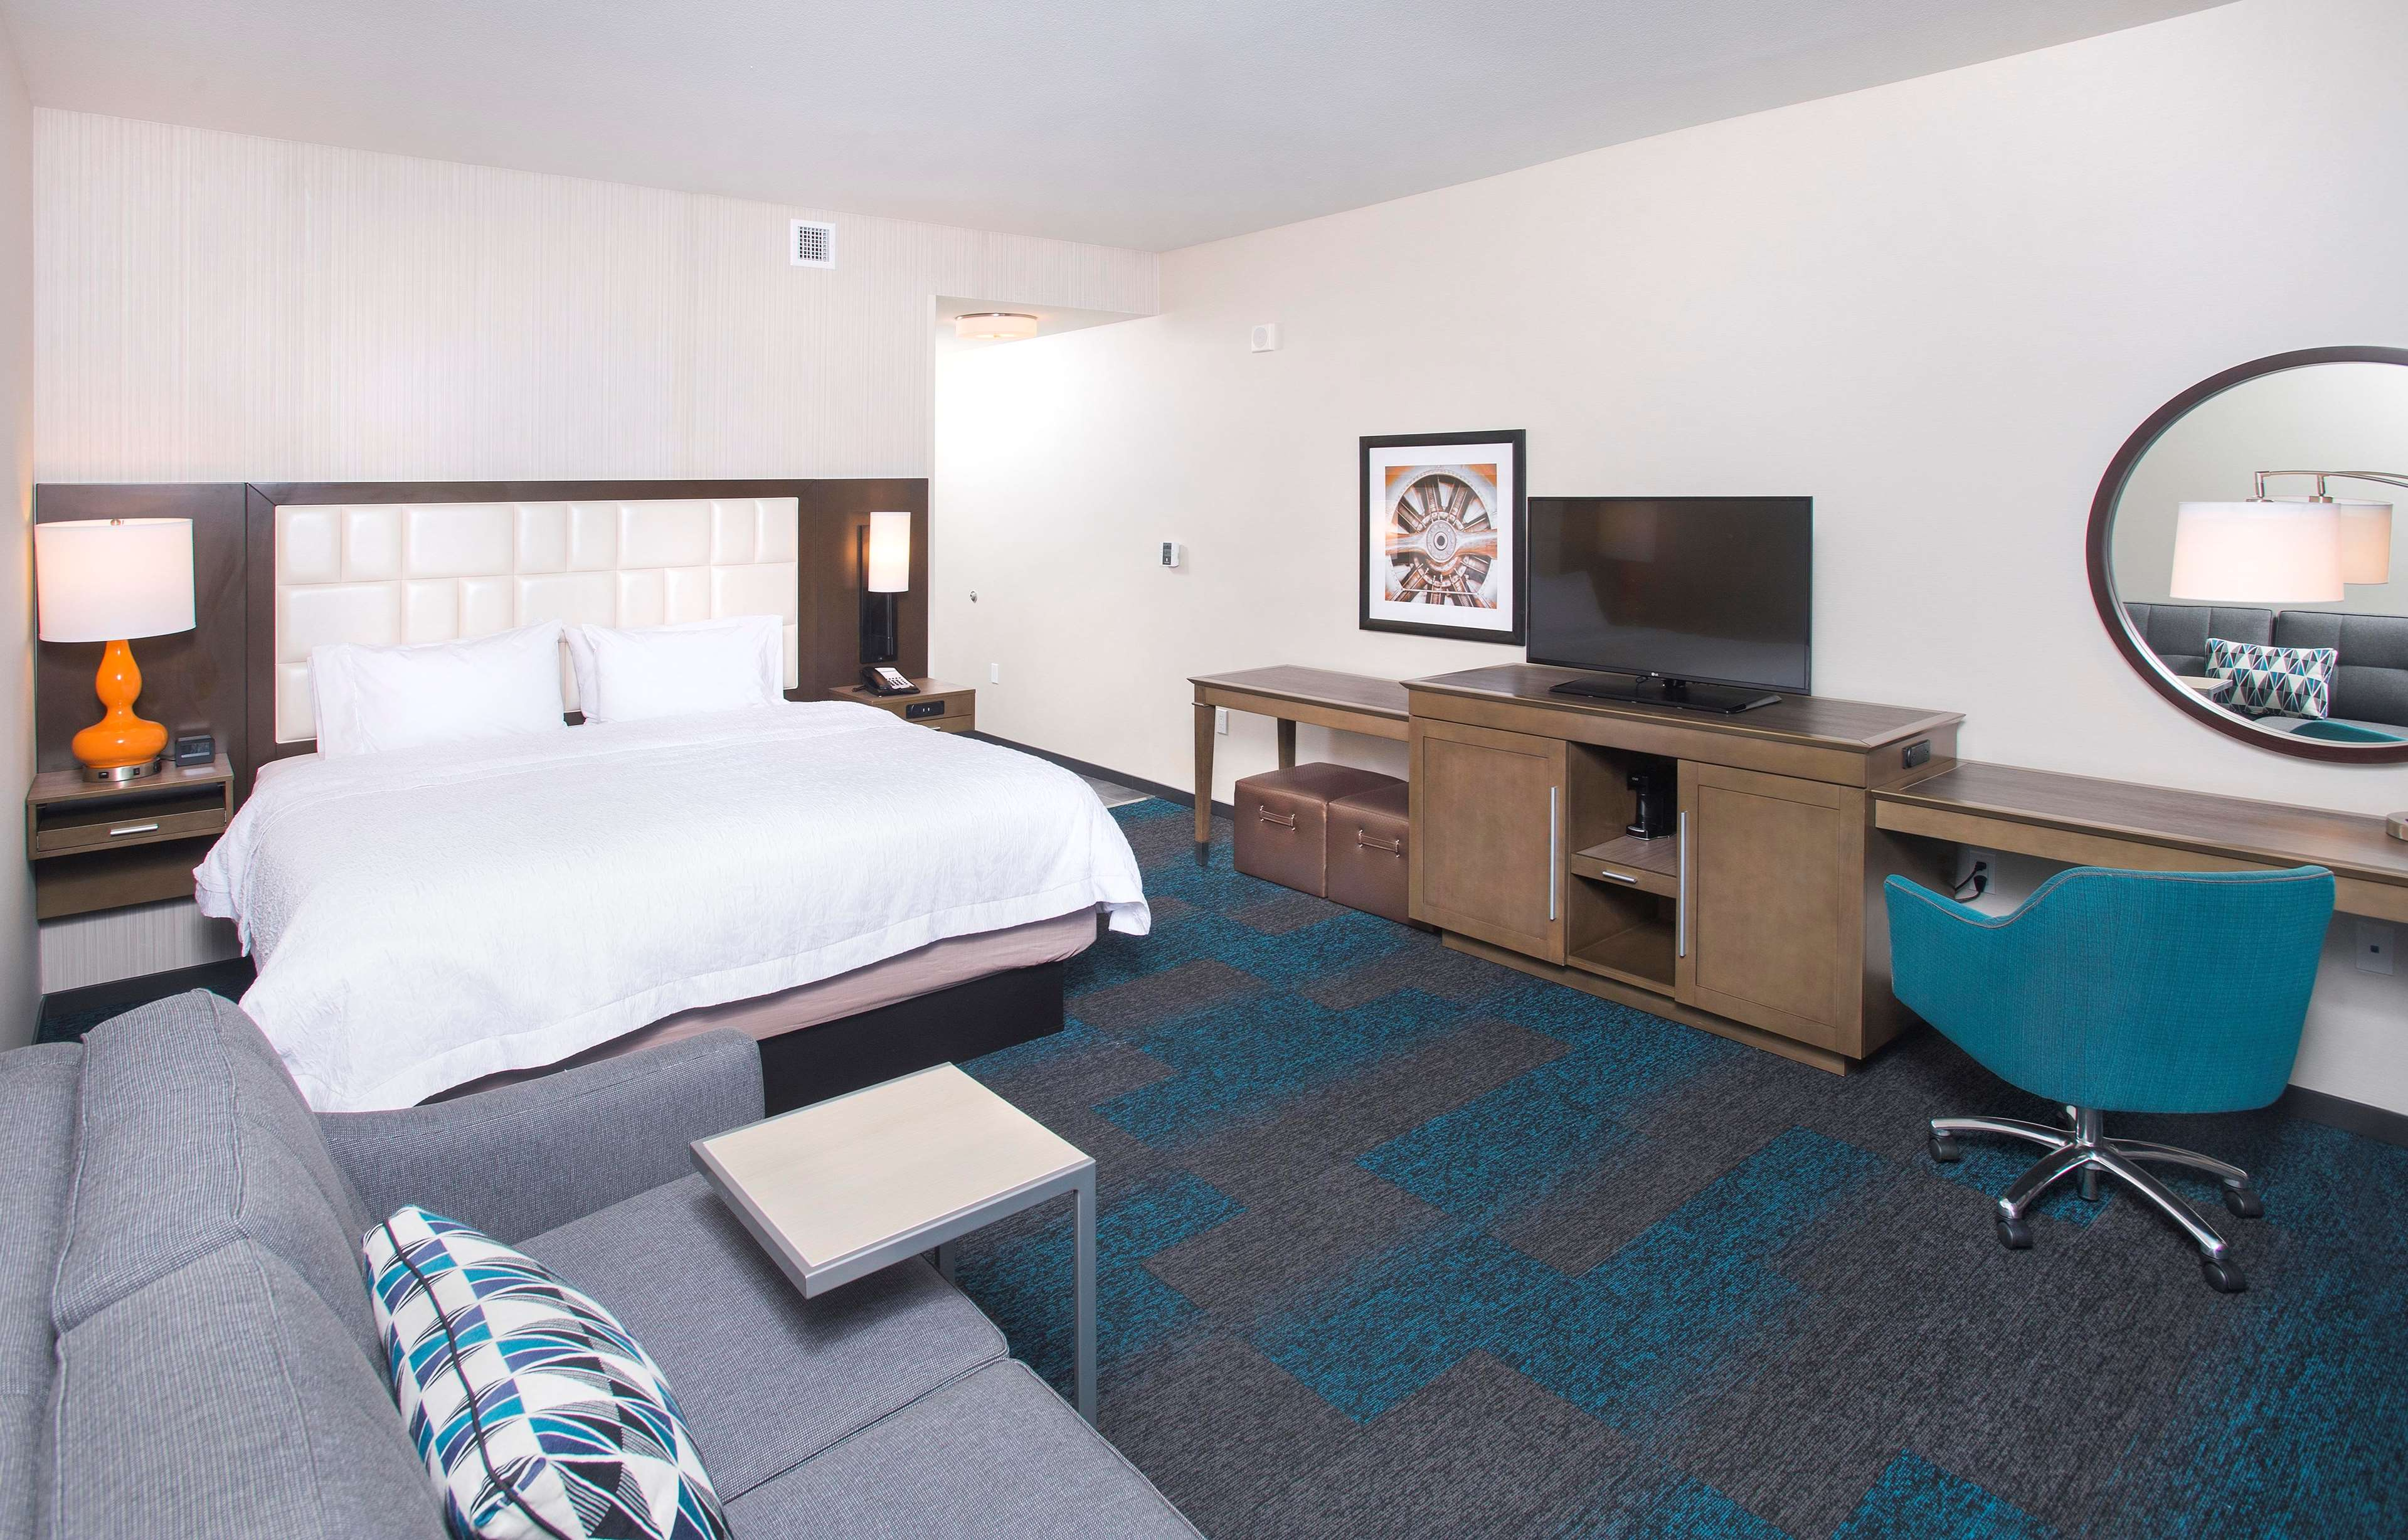 Hotels Near Lax With Free Shuttle And Breakfast